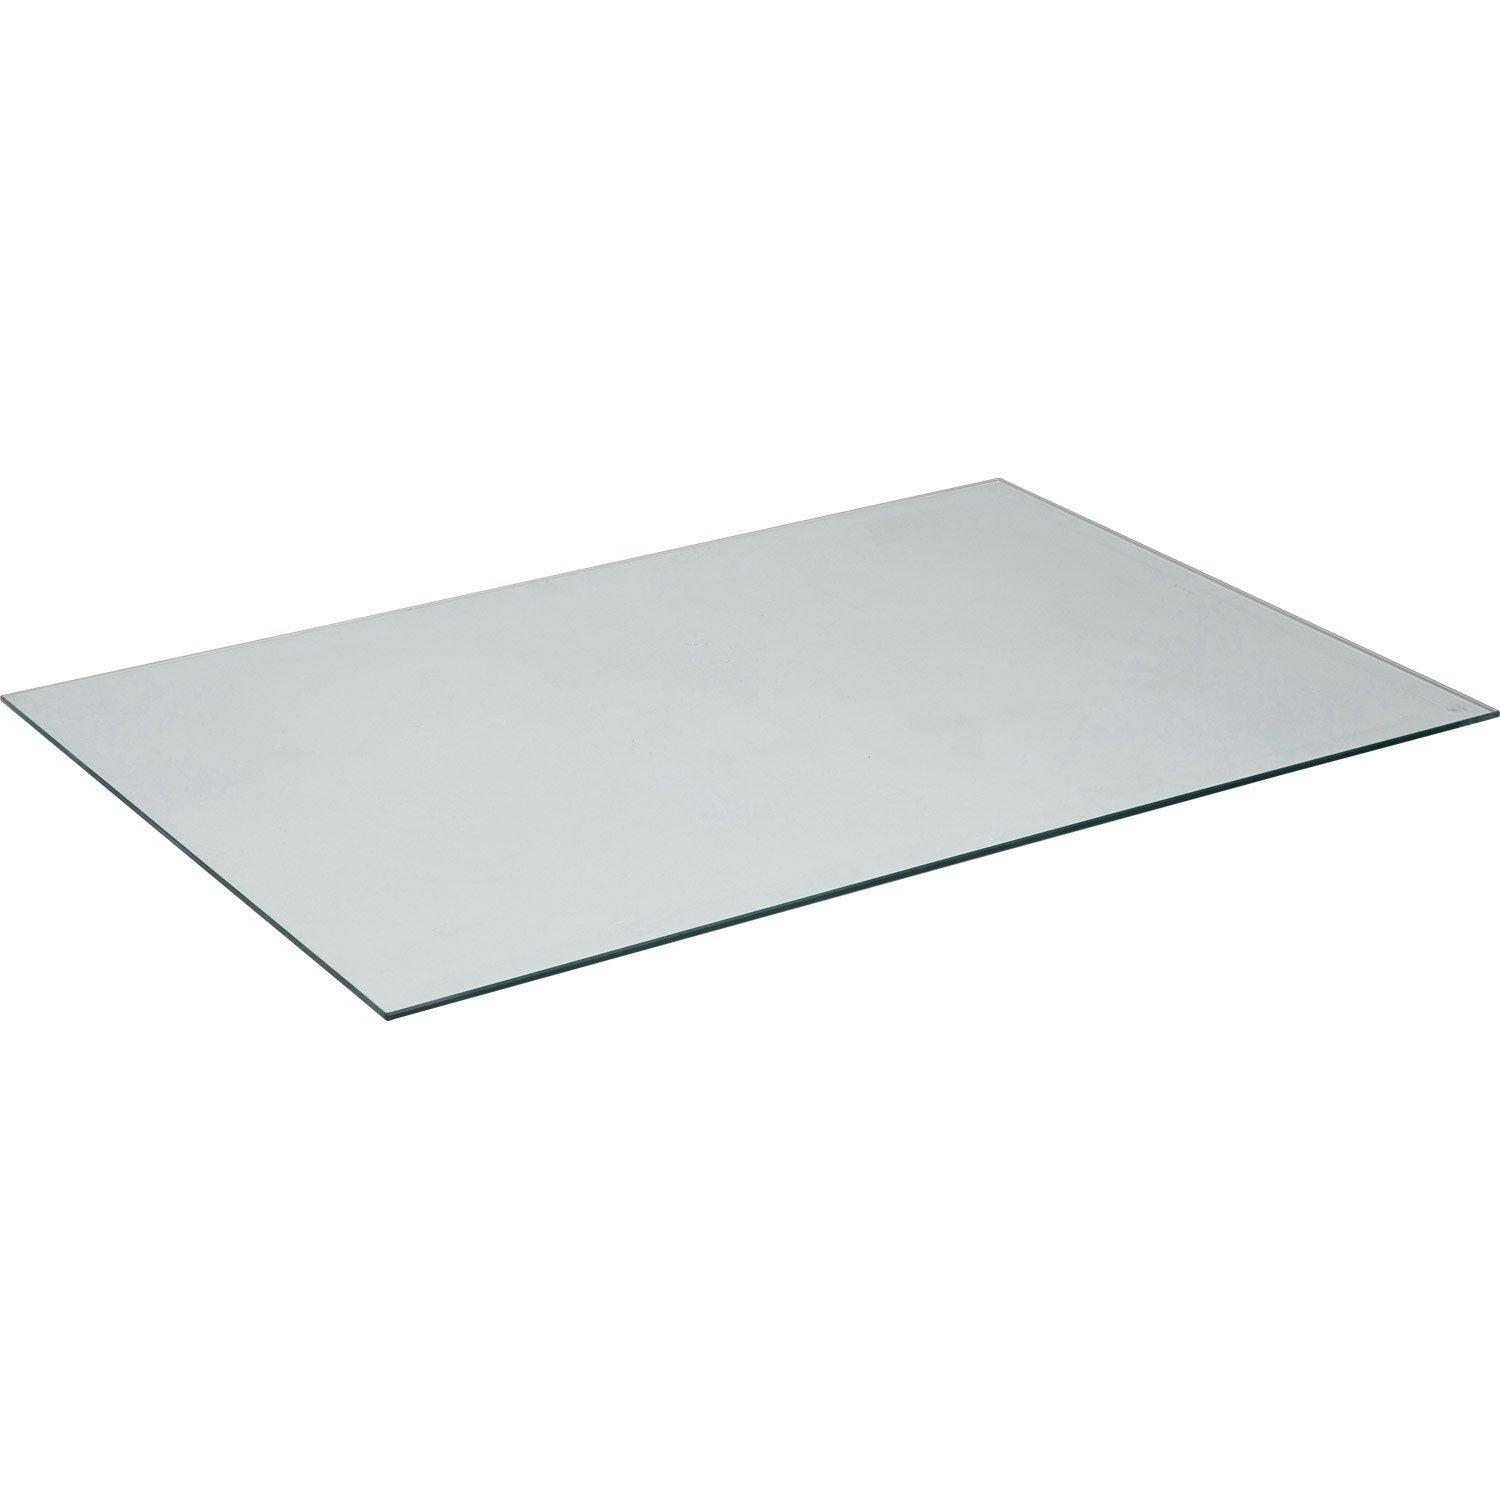 Plateau de table verre x cm x ep 8 mm leroy merlin - Verre trempe sur mesure leroy merlin ...